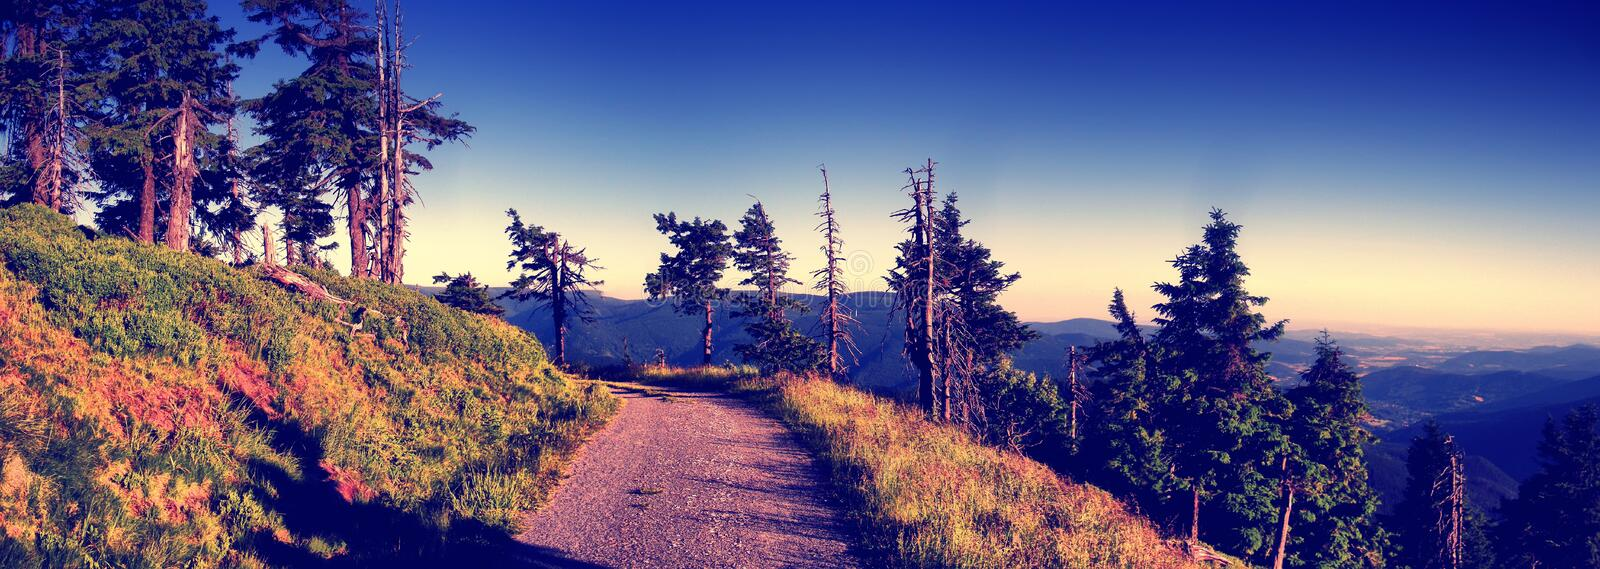 Scenic mountain landscape with gravel road royalty free stock photos